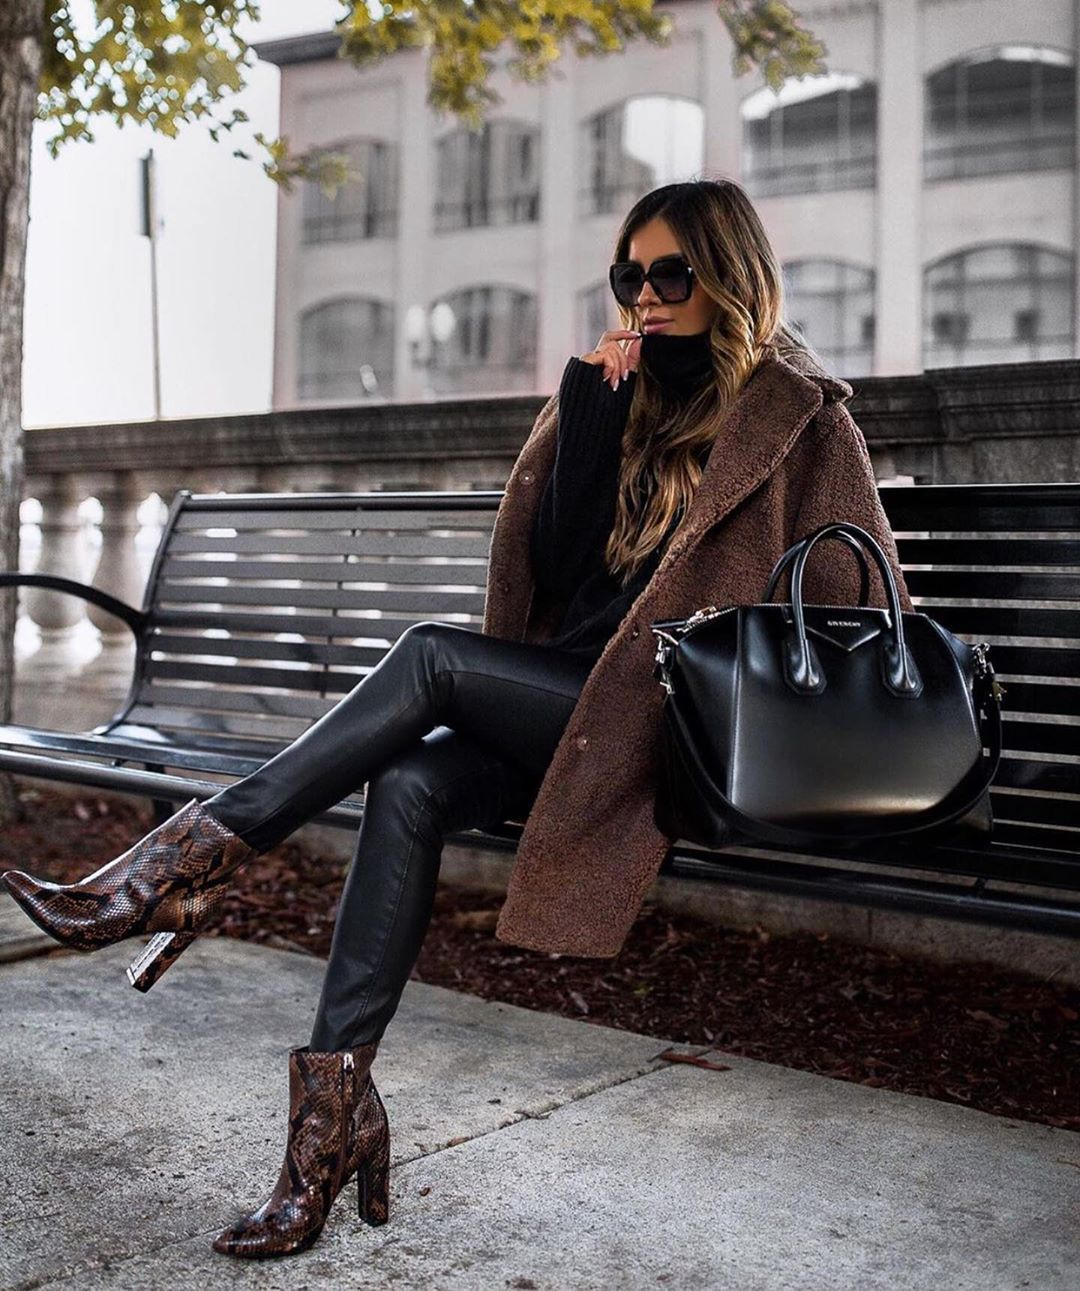 Fall fashion - black pants - snake print boots - brown teddy coat - street style #snakeprintbootsoutfit